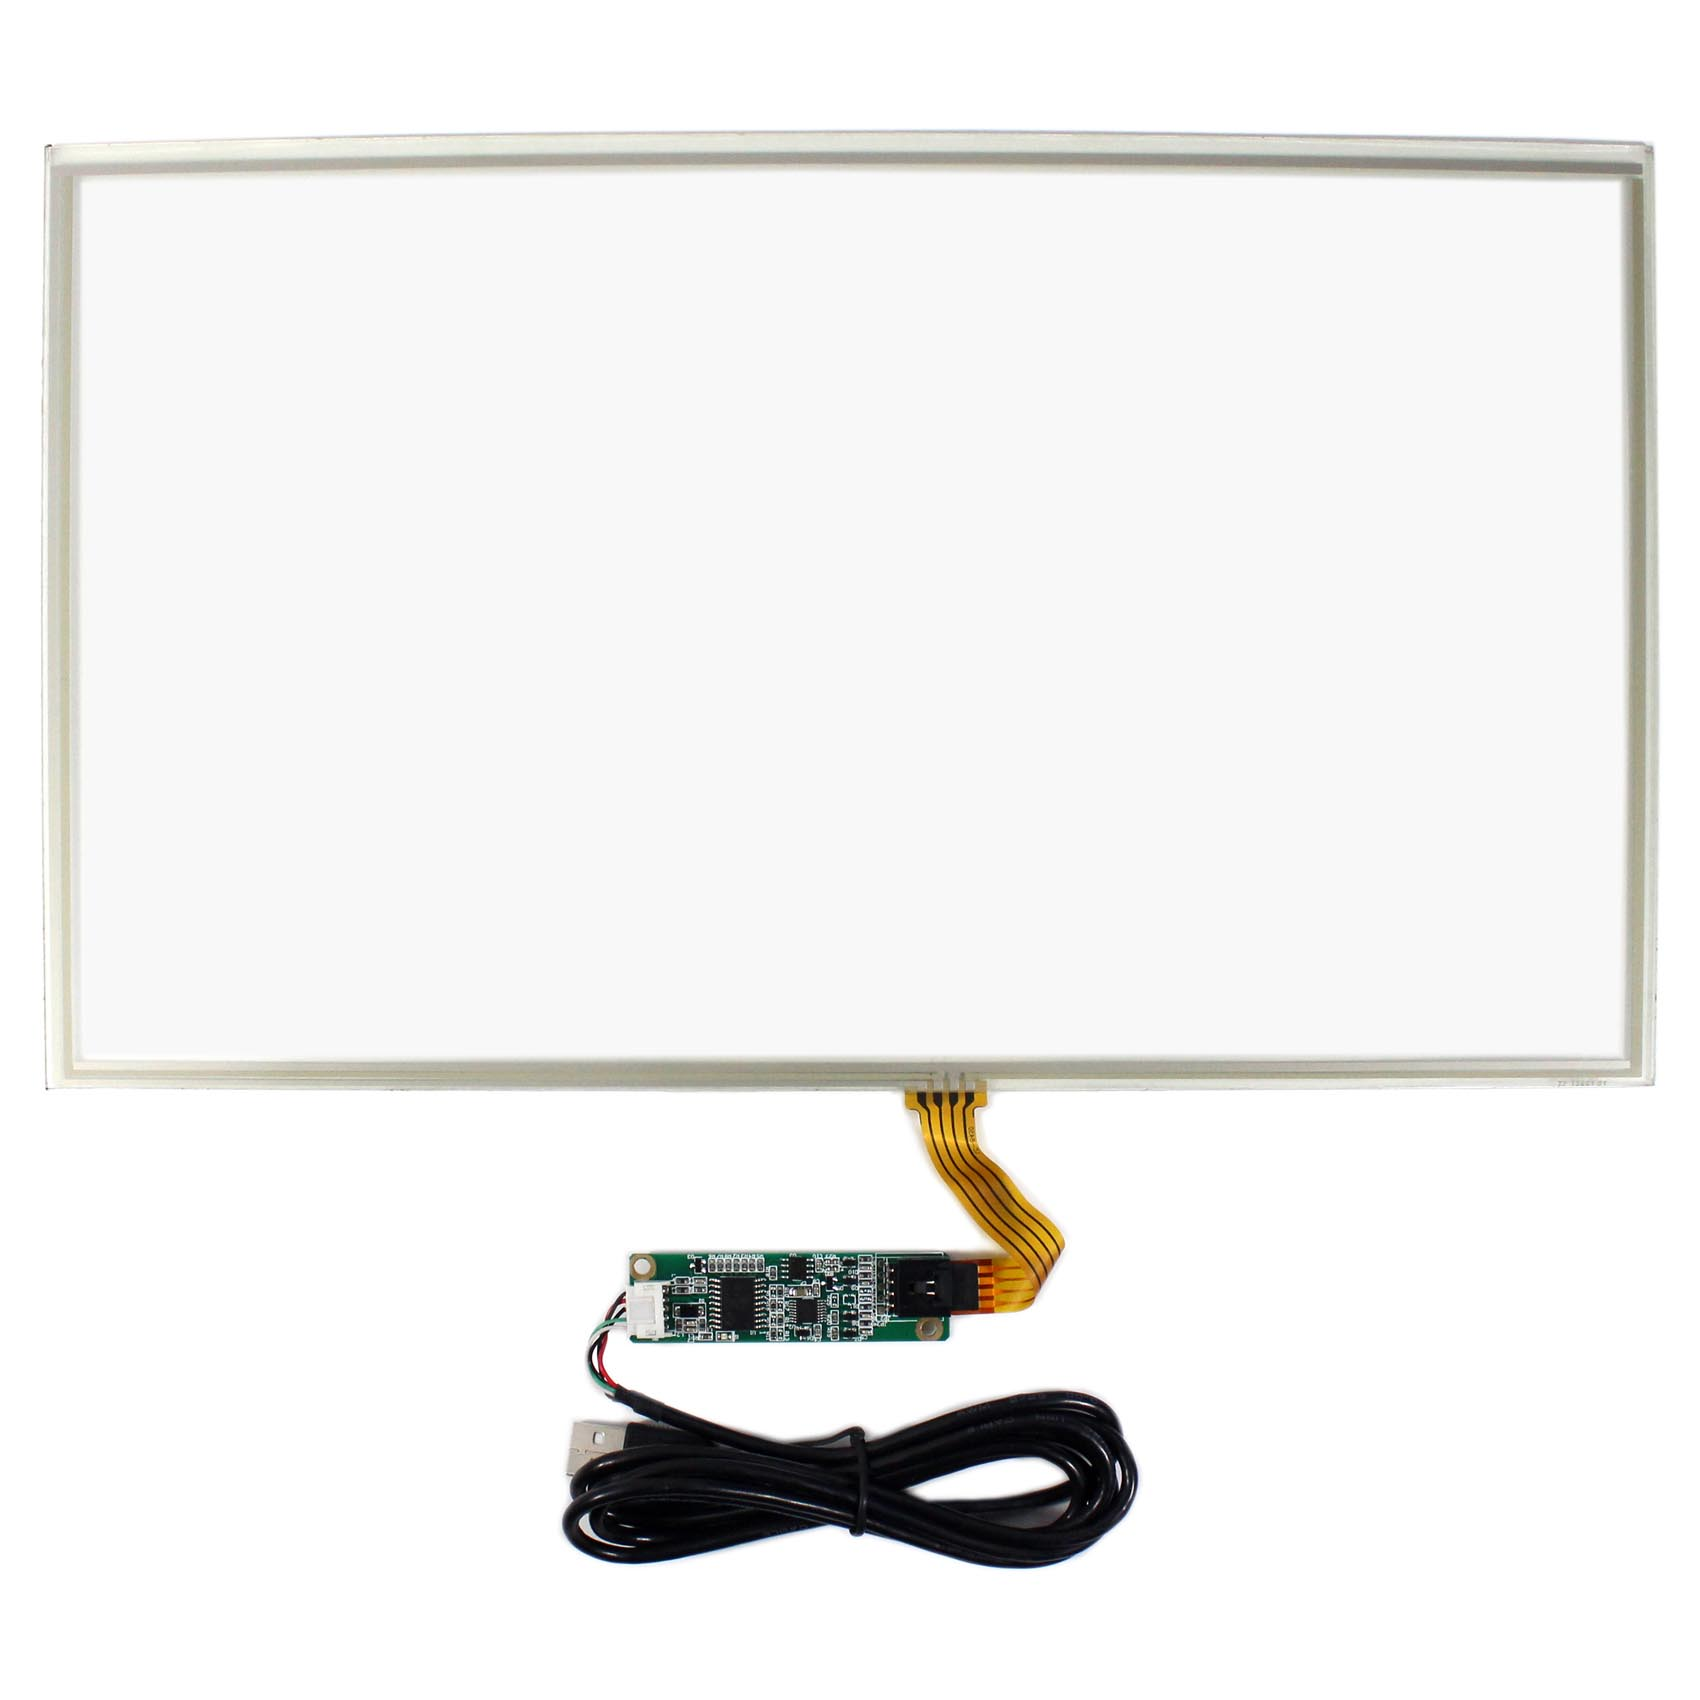 15 6 4 Wire Resistive Touch Panel Usb Controller For 15 6inch Lcd Screen